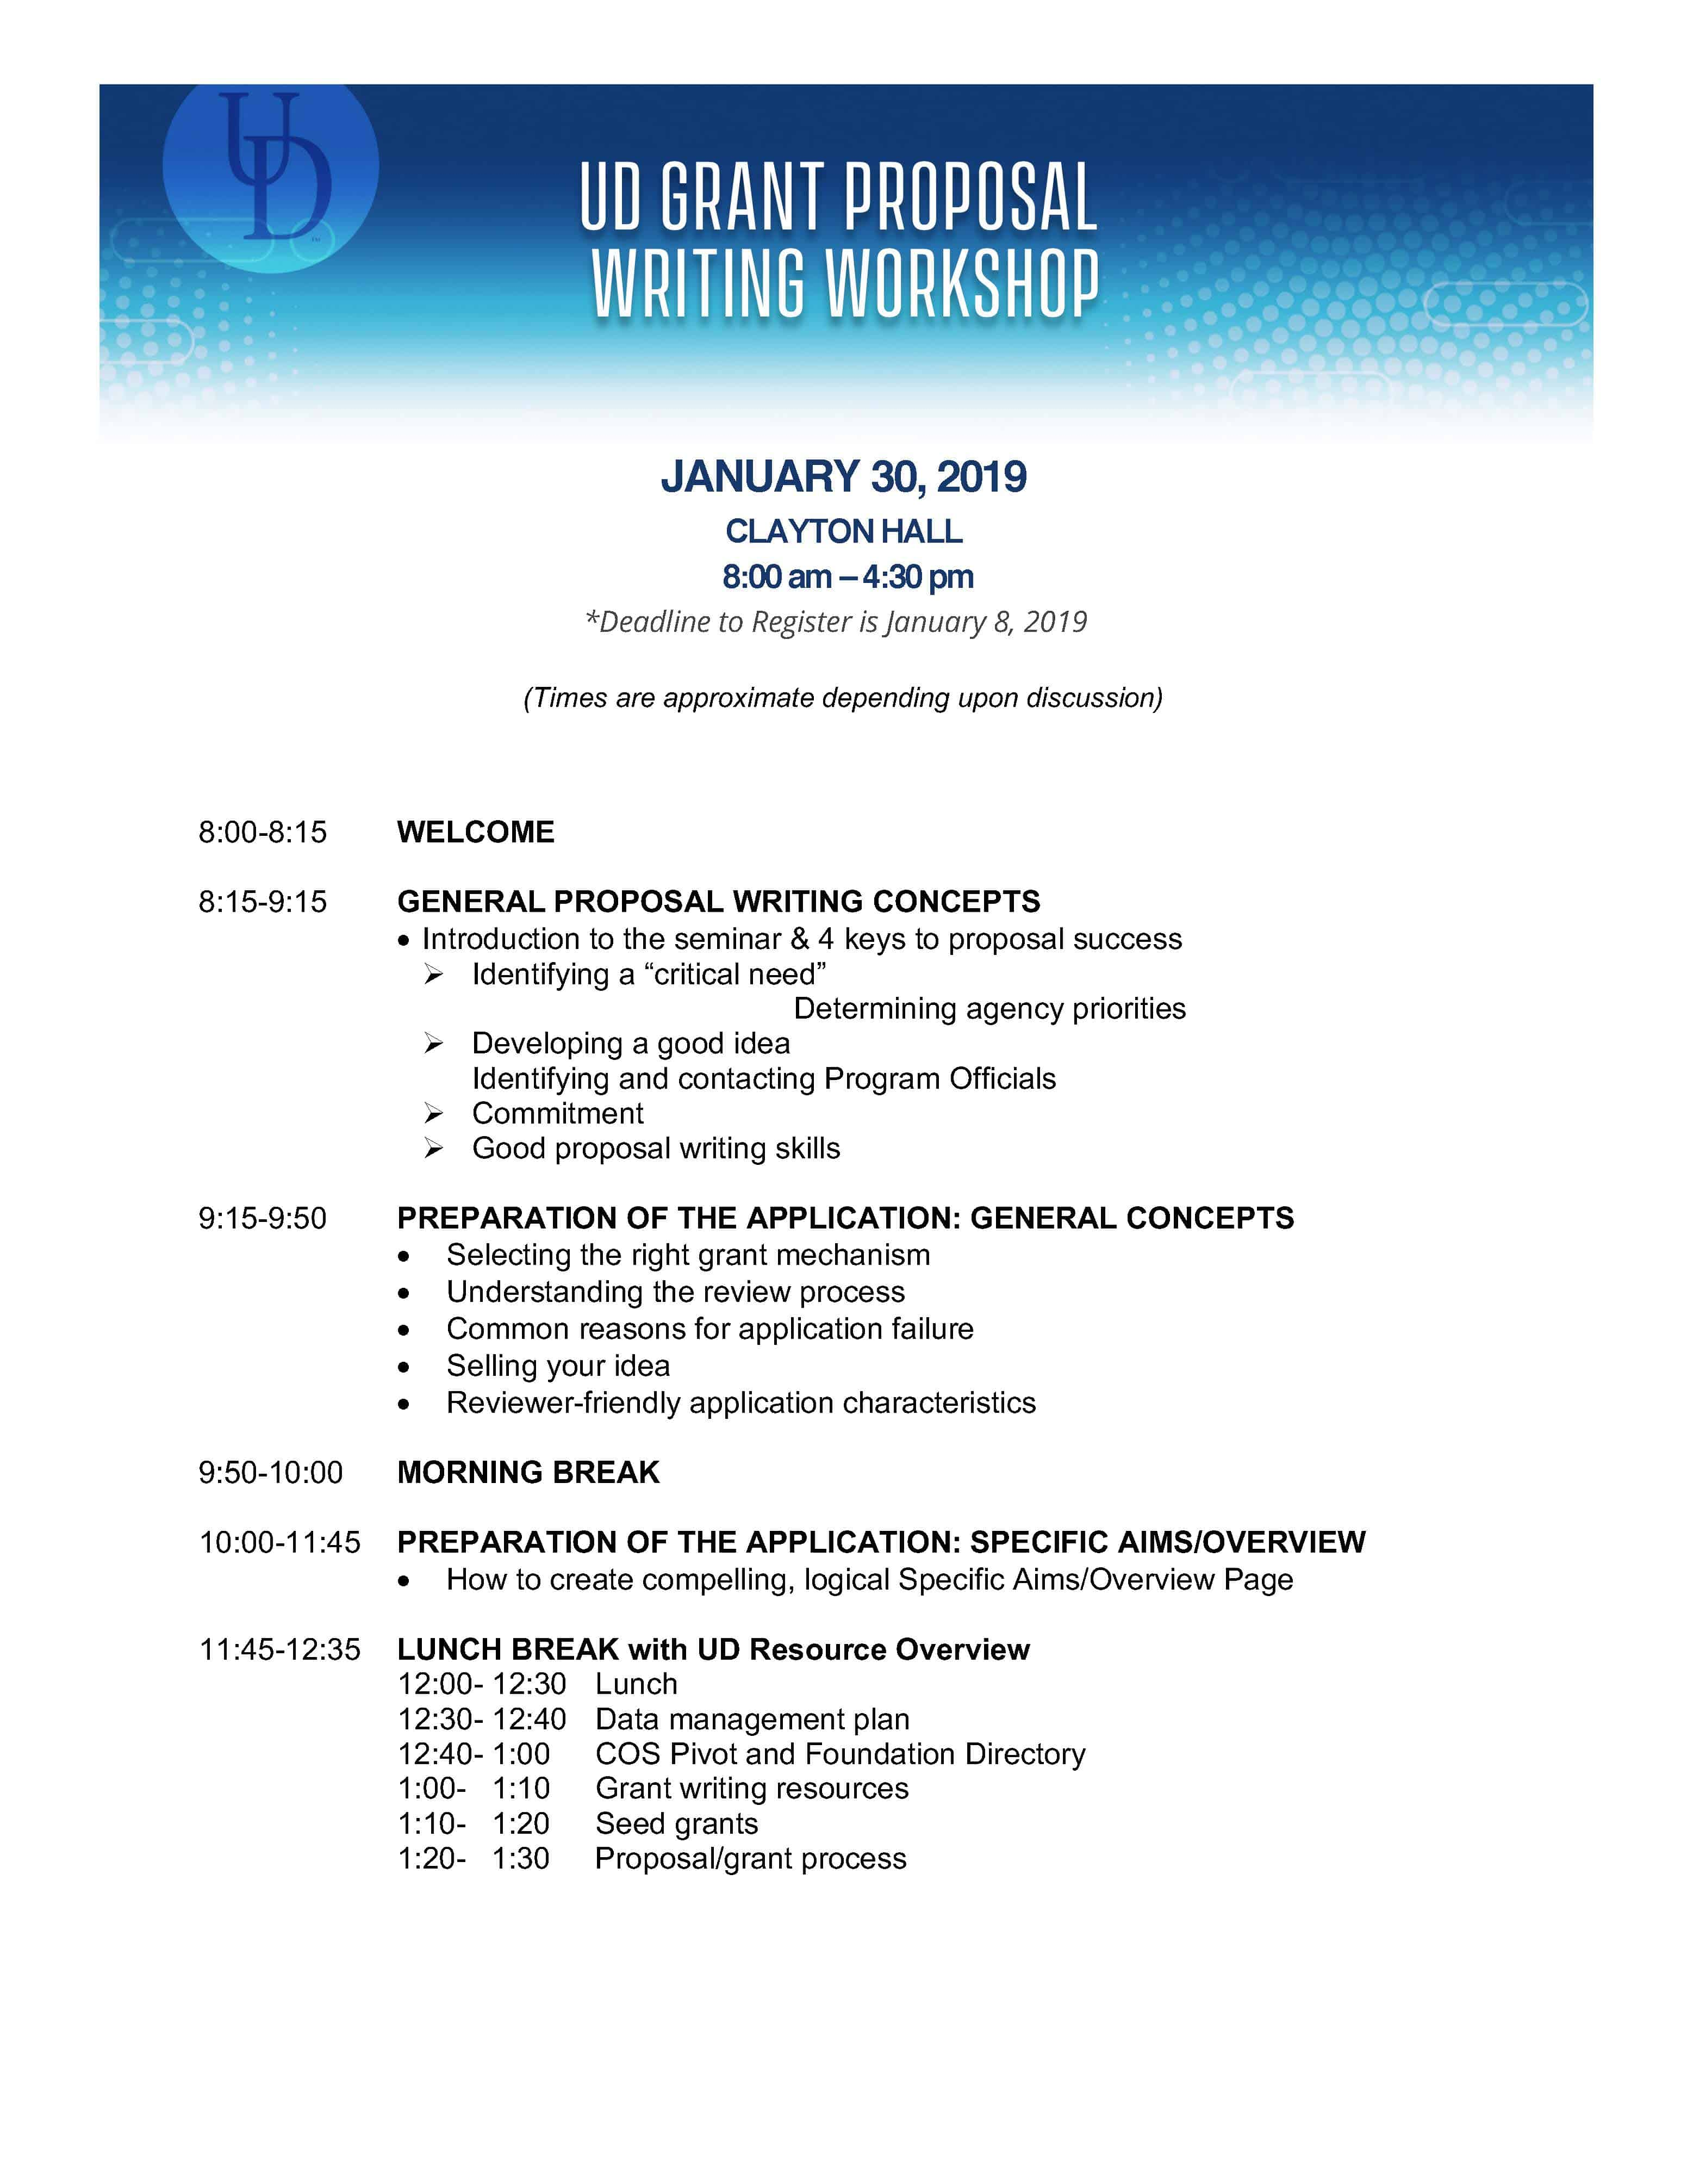 UD Grant Proposal Writing Workshop | University of Delaware